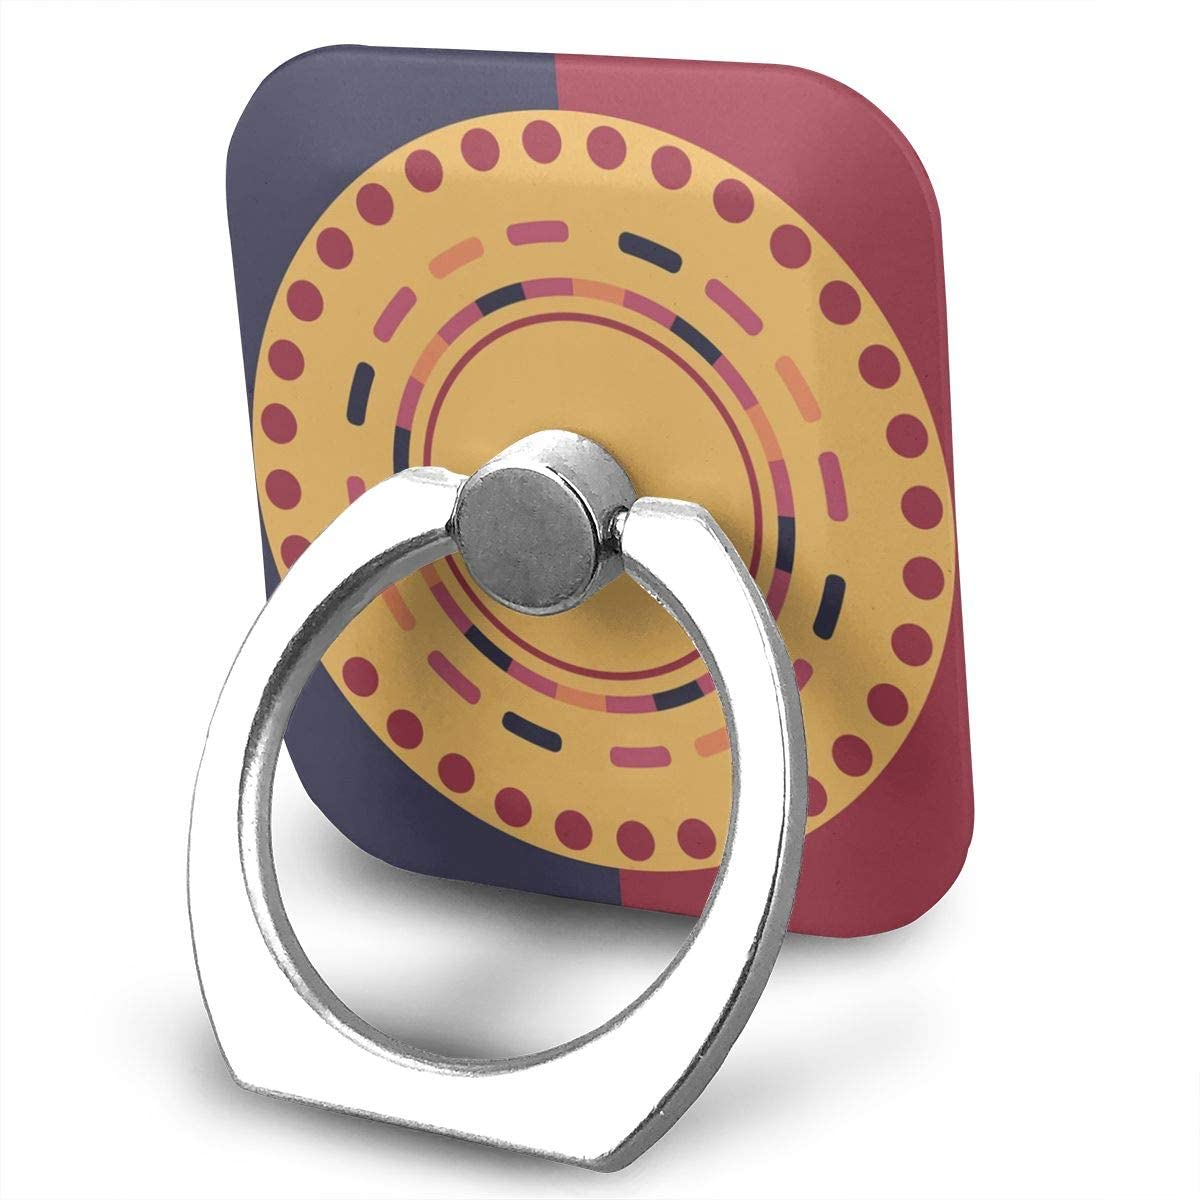 SLHFPX Cell Phone Ring Holder Stand Colorful Electronic Round Design Adjustable 360°Rotation Square Universal Finger Grip Loop Silver Metal Phone Holder for Women Kids Men Ladies